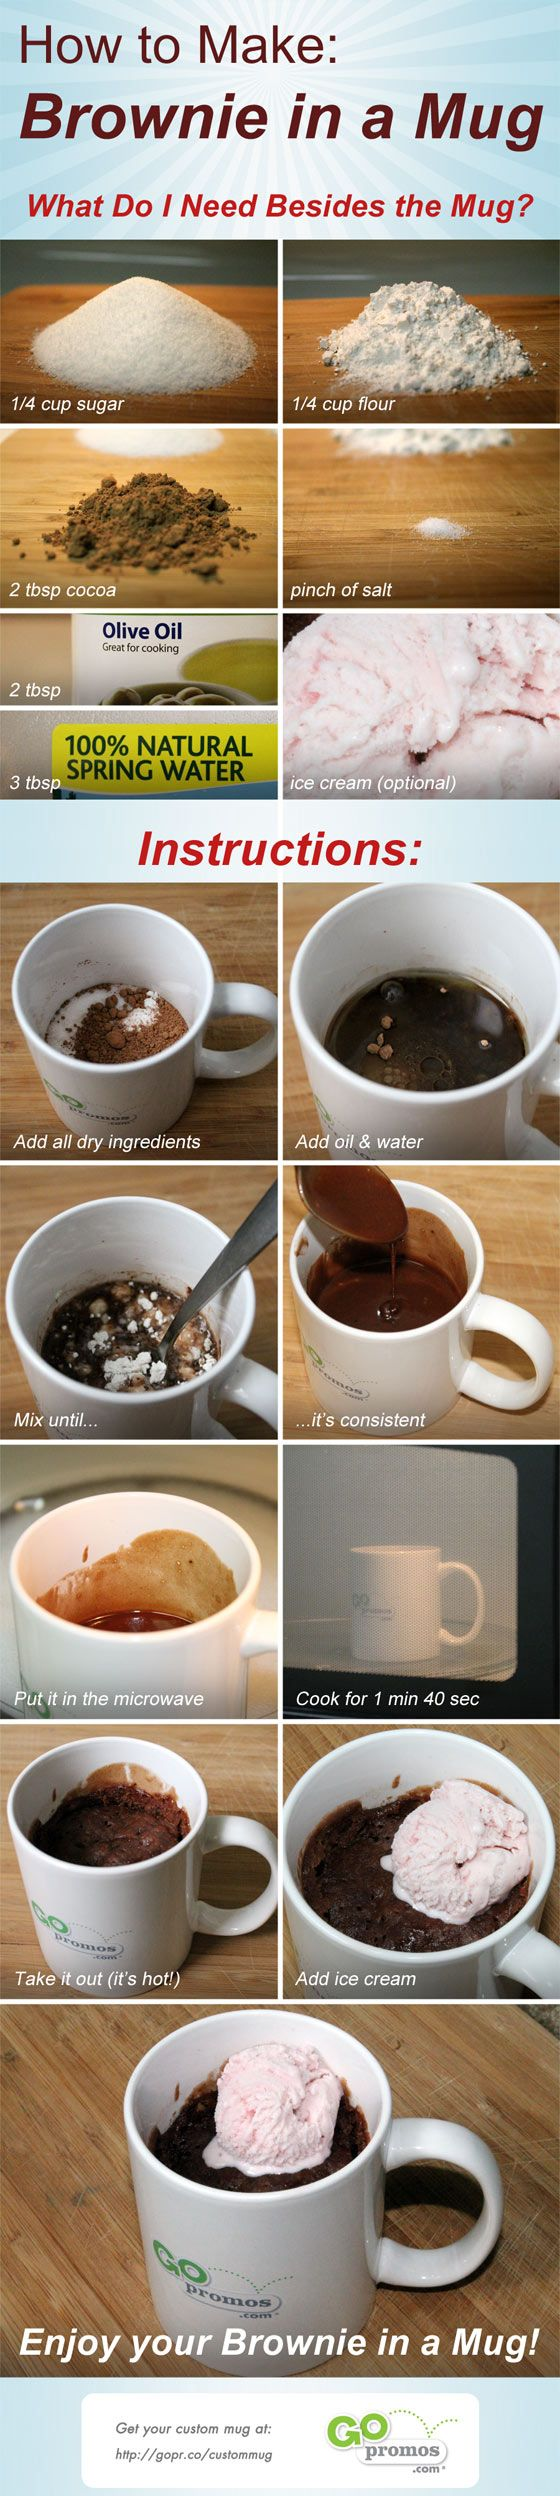 How to make a brownie in a mug.UPDATE,it exploded...